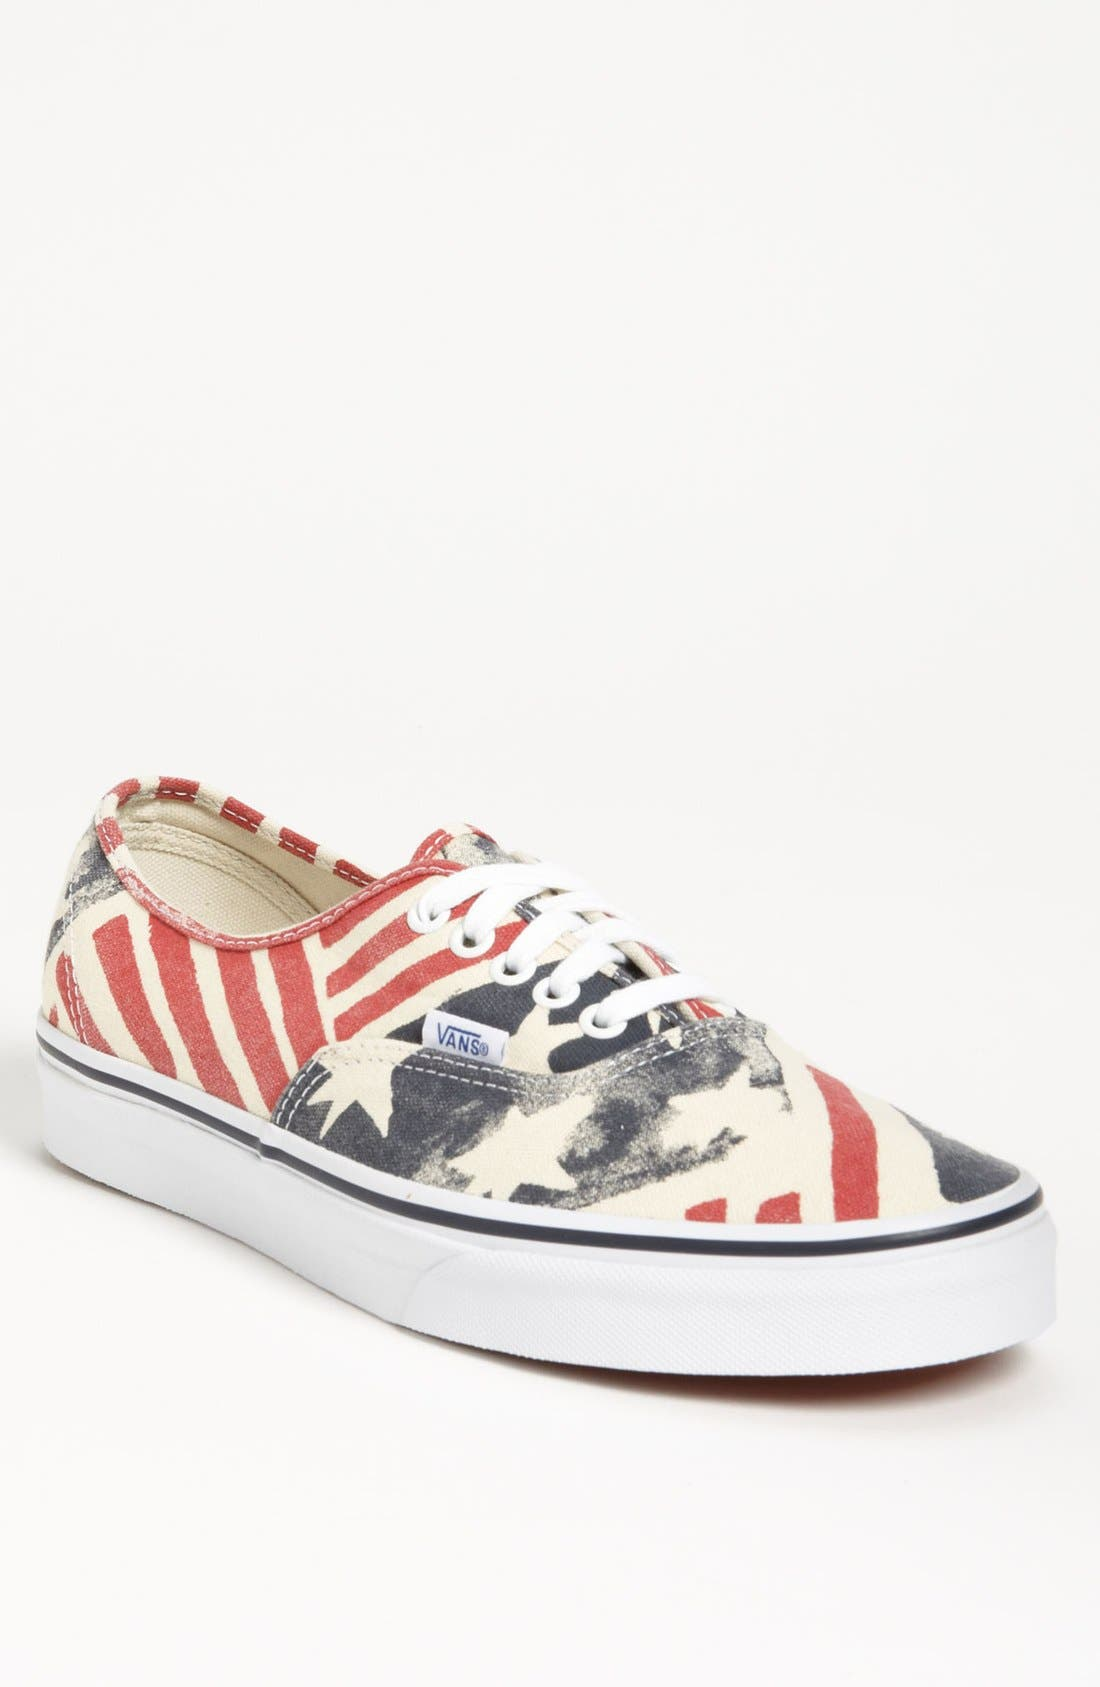 Main Image - Vans 'Van Doren - Authentic' Sneaker (Men)